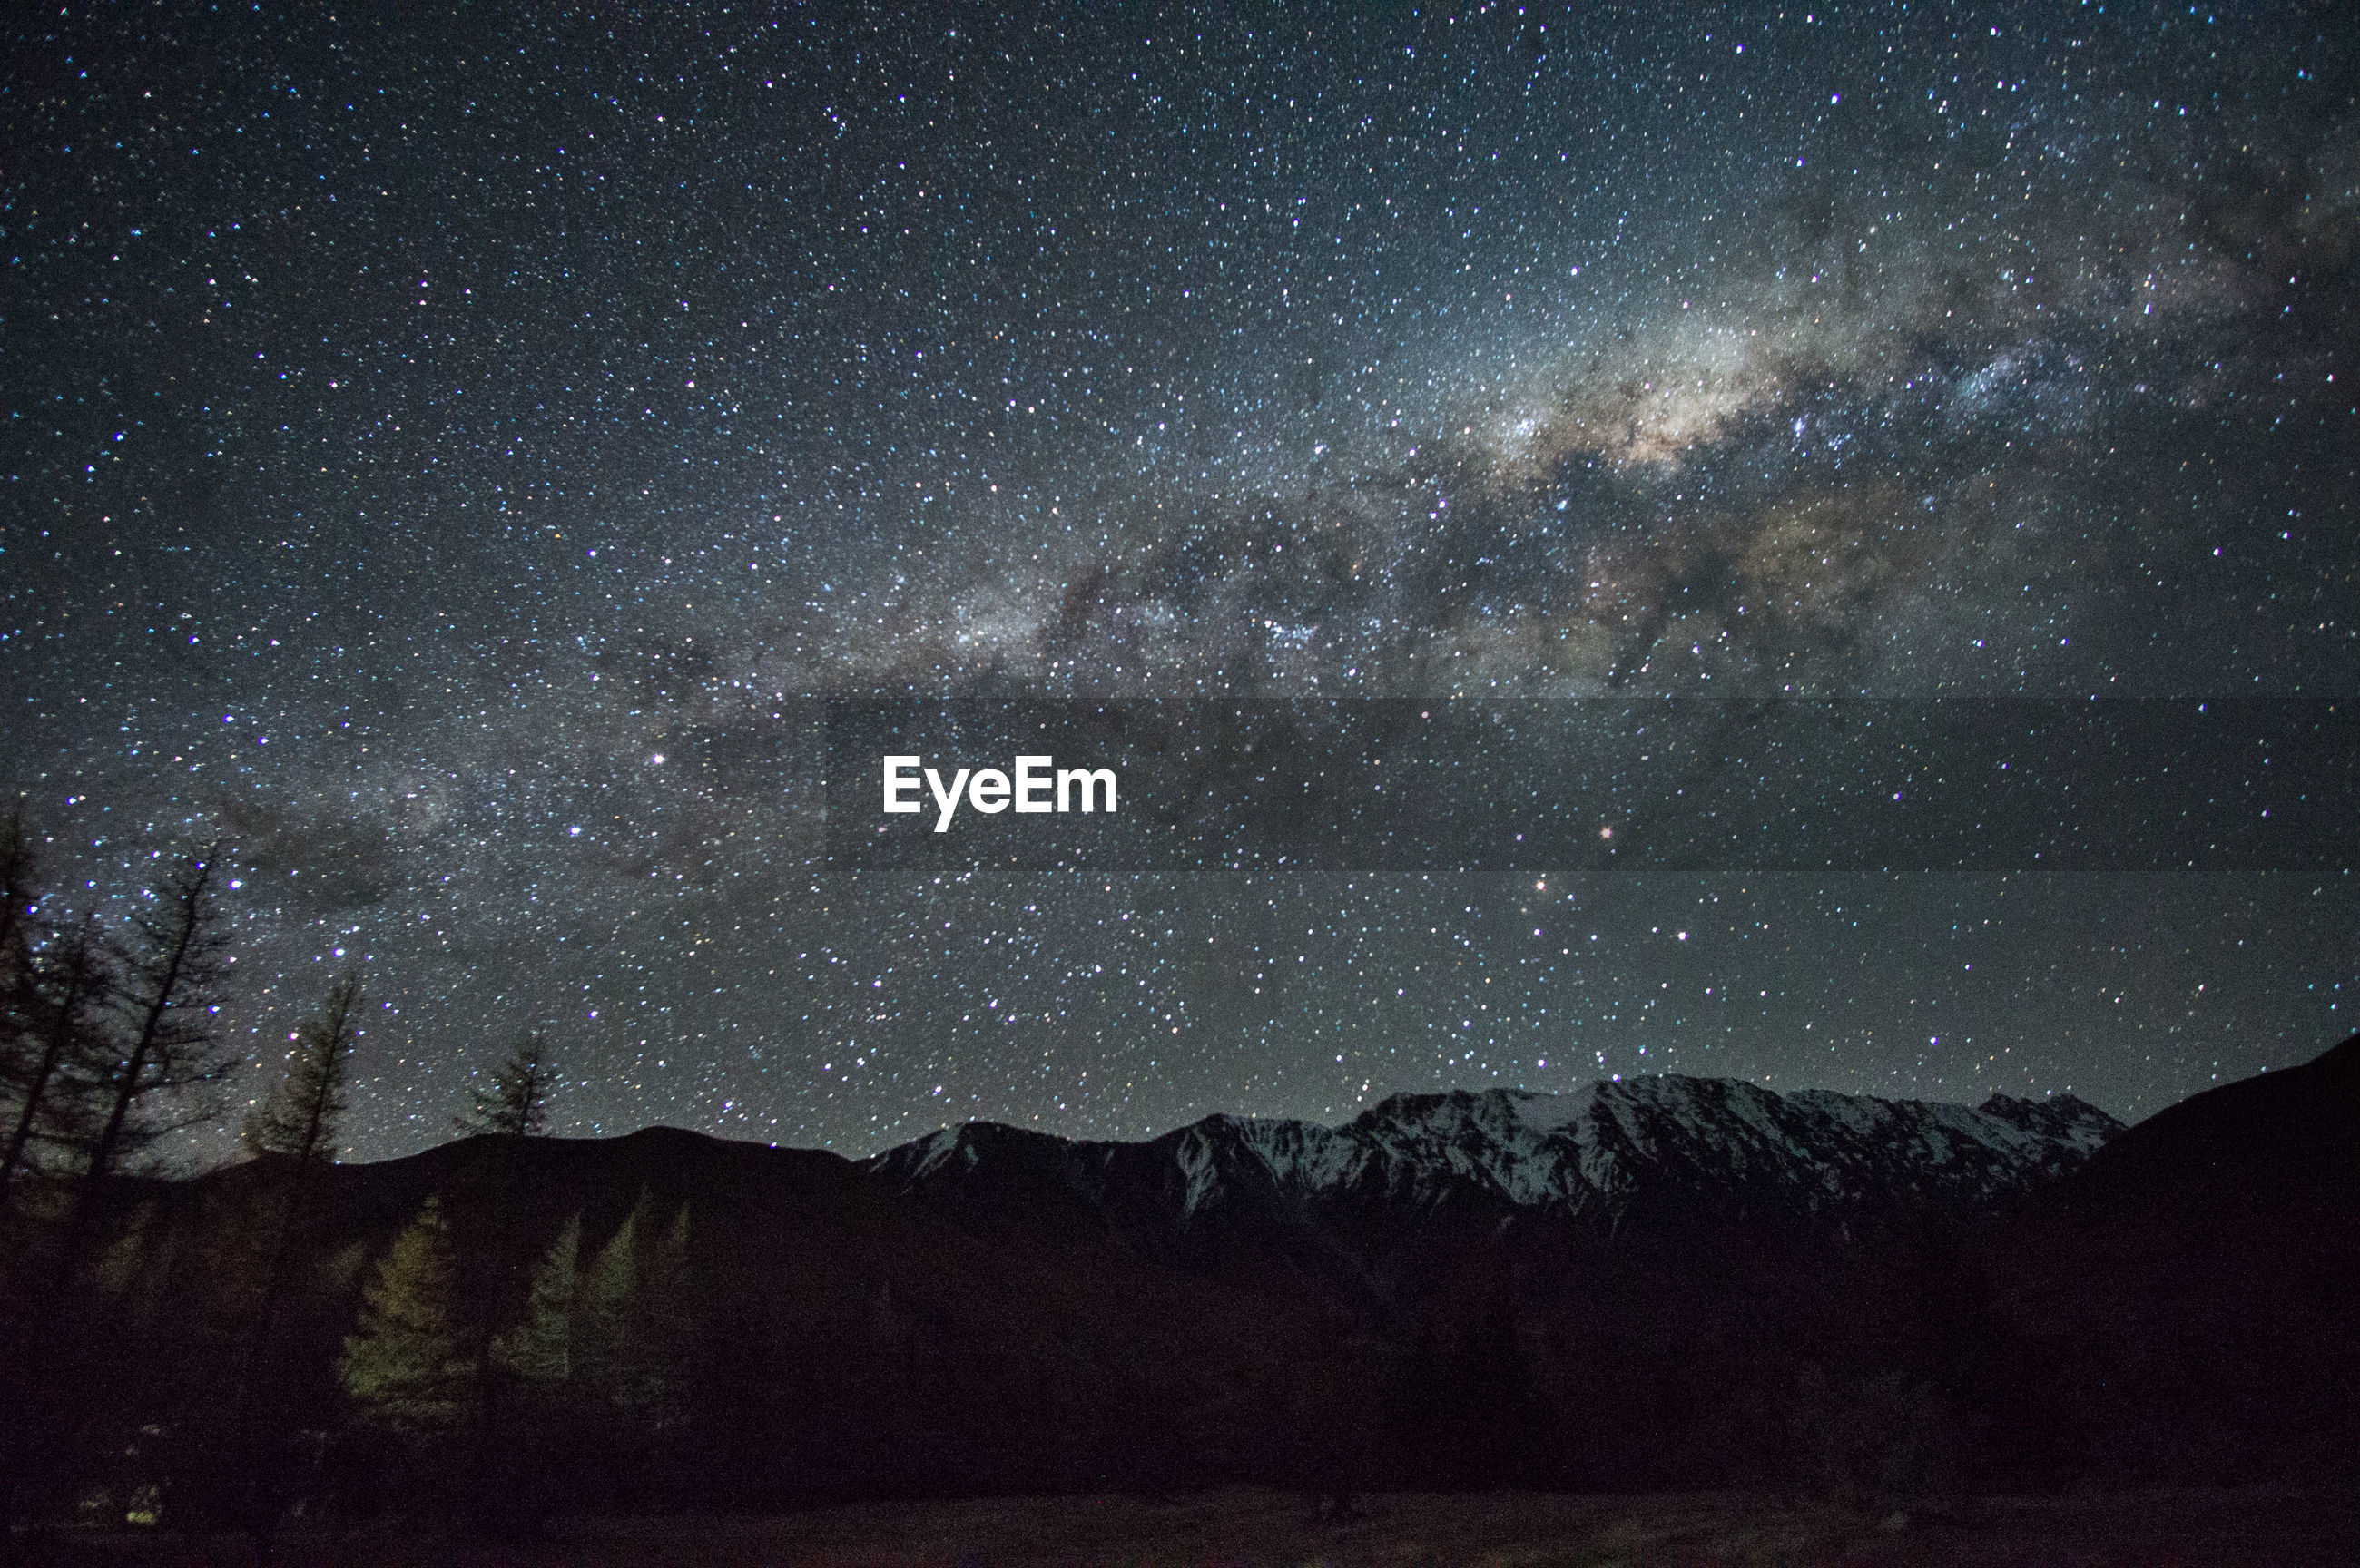 SCENIC VIEW OF SILHOUETTE MOUNTAIN AGAINST STAR FIELD